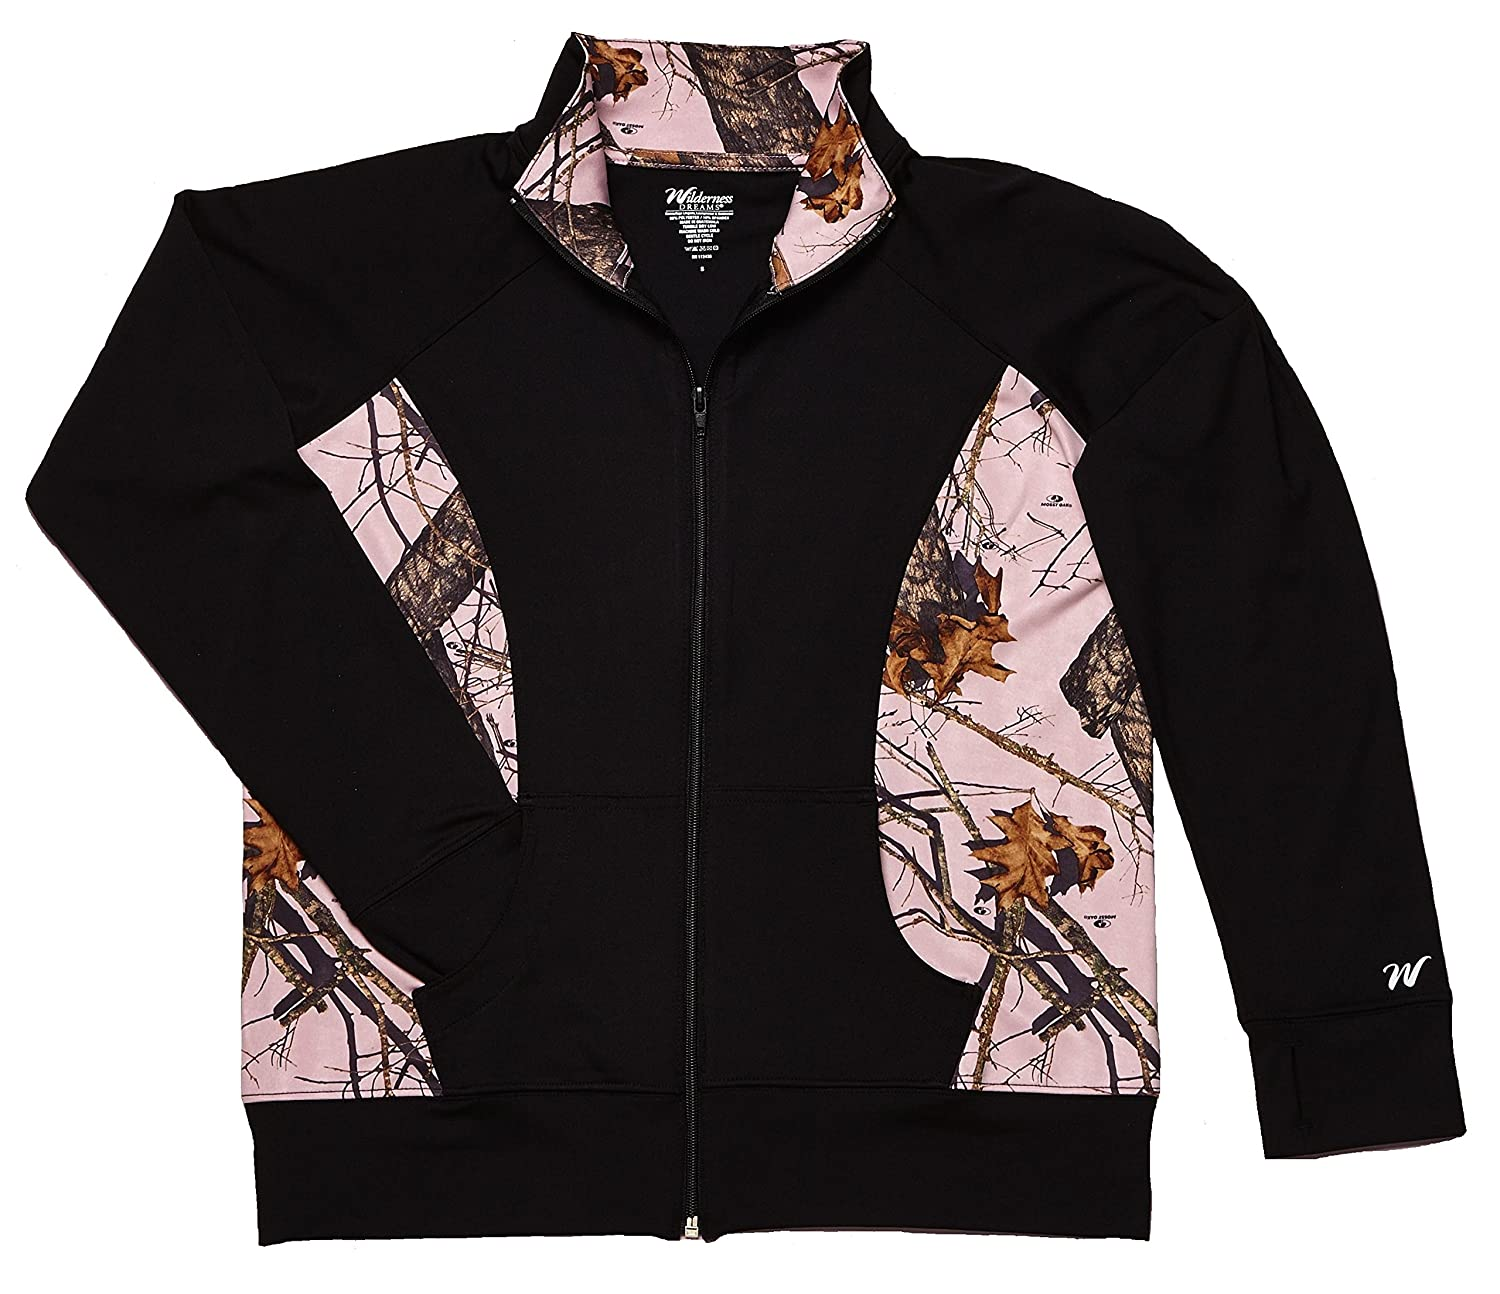 2cc67fcd58c Amazon.com  WD Womens Activewear Black Jacket with Pink Mossy Oak  Camouflage Accents  Clothing